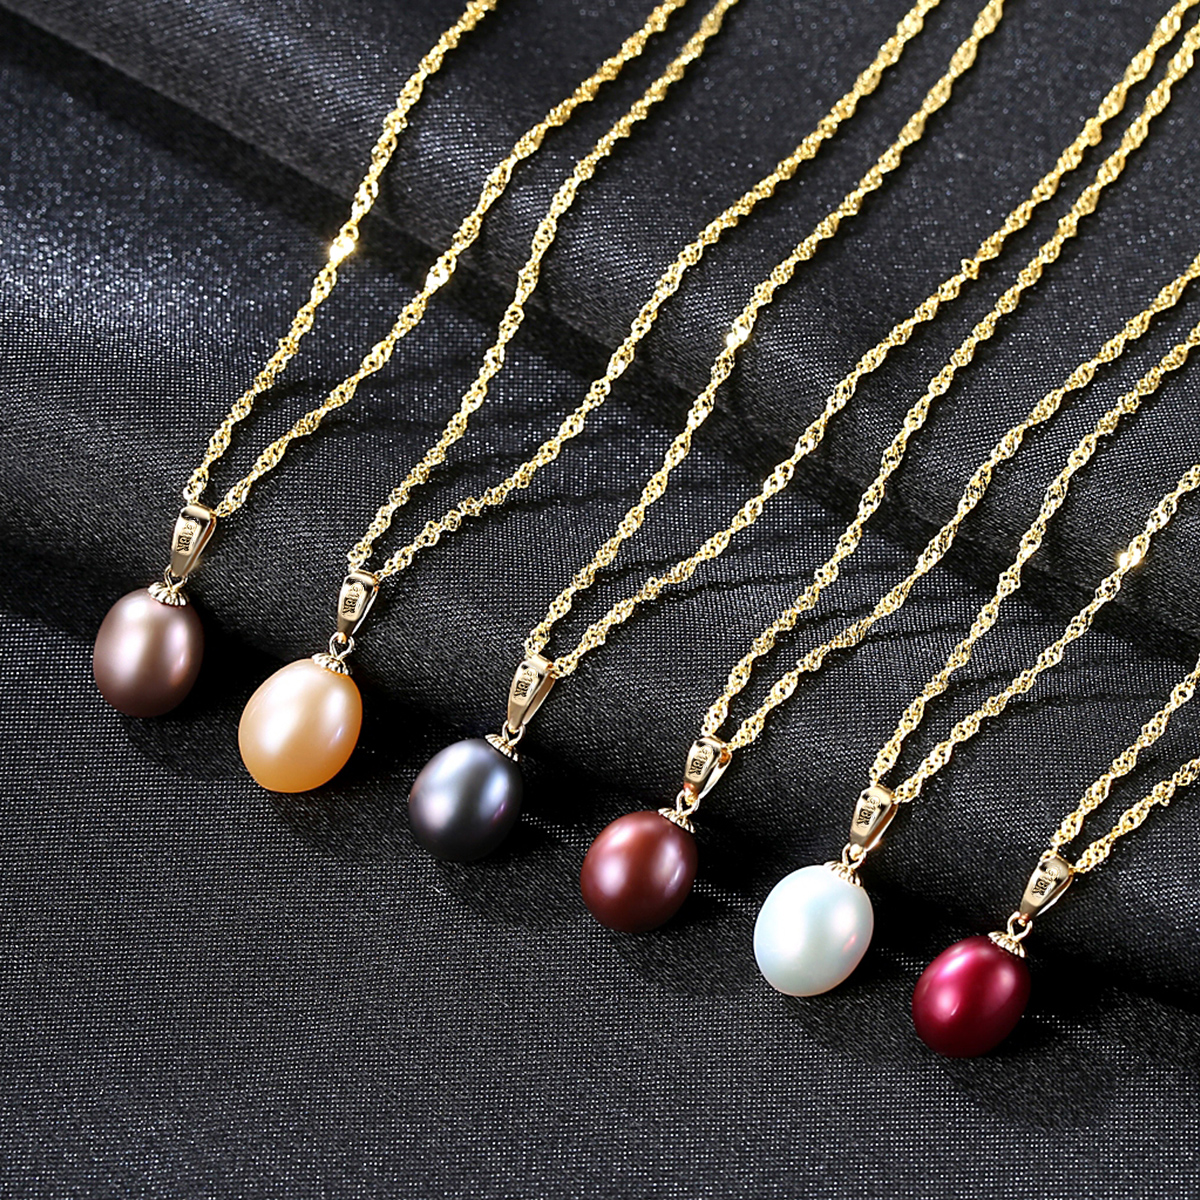 pearl beads necklace necklace with pearls vintage pearl necklace luxury pearl necklace freshwater pearl necklace(China)